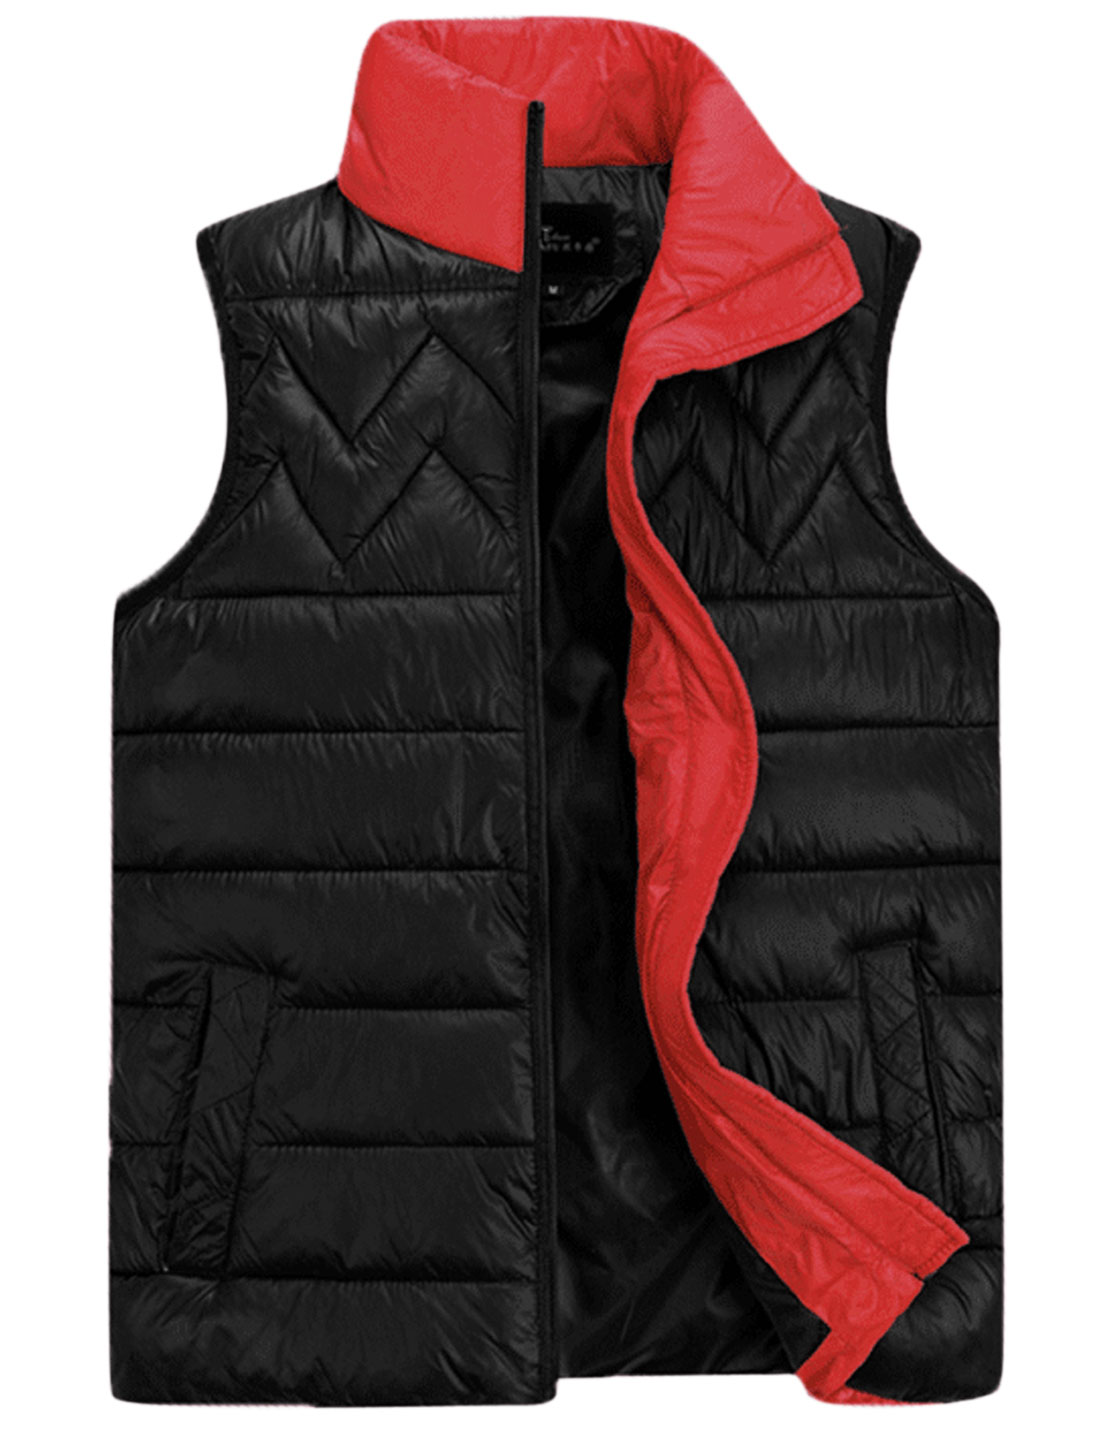 Cozy Fit Full Zip Interior Pockets Stylish Padded Vest for Men Black M